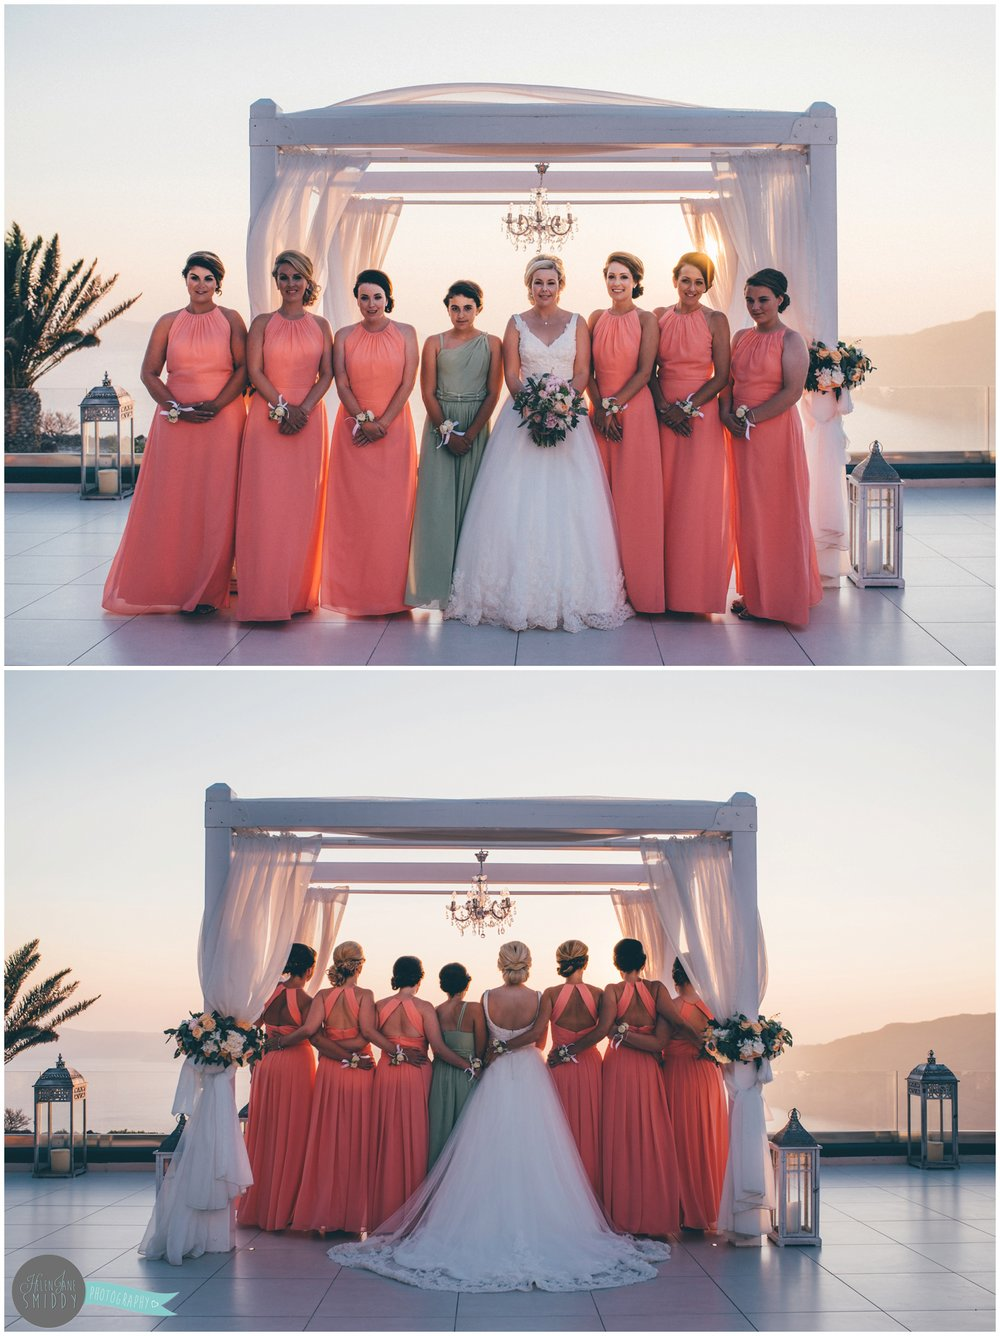 wedding-weddingphotographer-weddingphotographer-destinationwedding-destinationweddingphotographer-destinationweddingphotography-greece-santorini-thira-fira-leciel-brideandgroom-bride-groom-santoriniwedding-weddingspeech-weddingspeeches-speeches-newlyweds-weddingbouquet-cheshire-cheshirewedding-cheshireweddingphotographer-cheshireweddingphotography-bridalparty-weddingparty